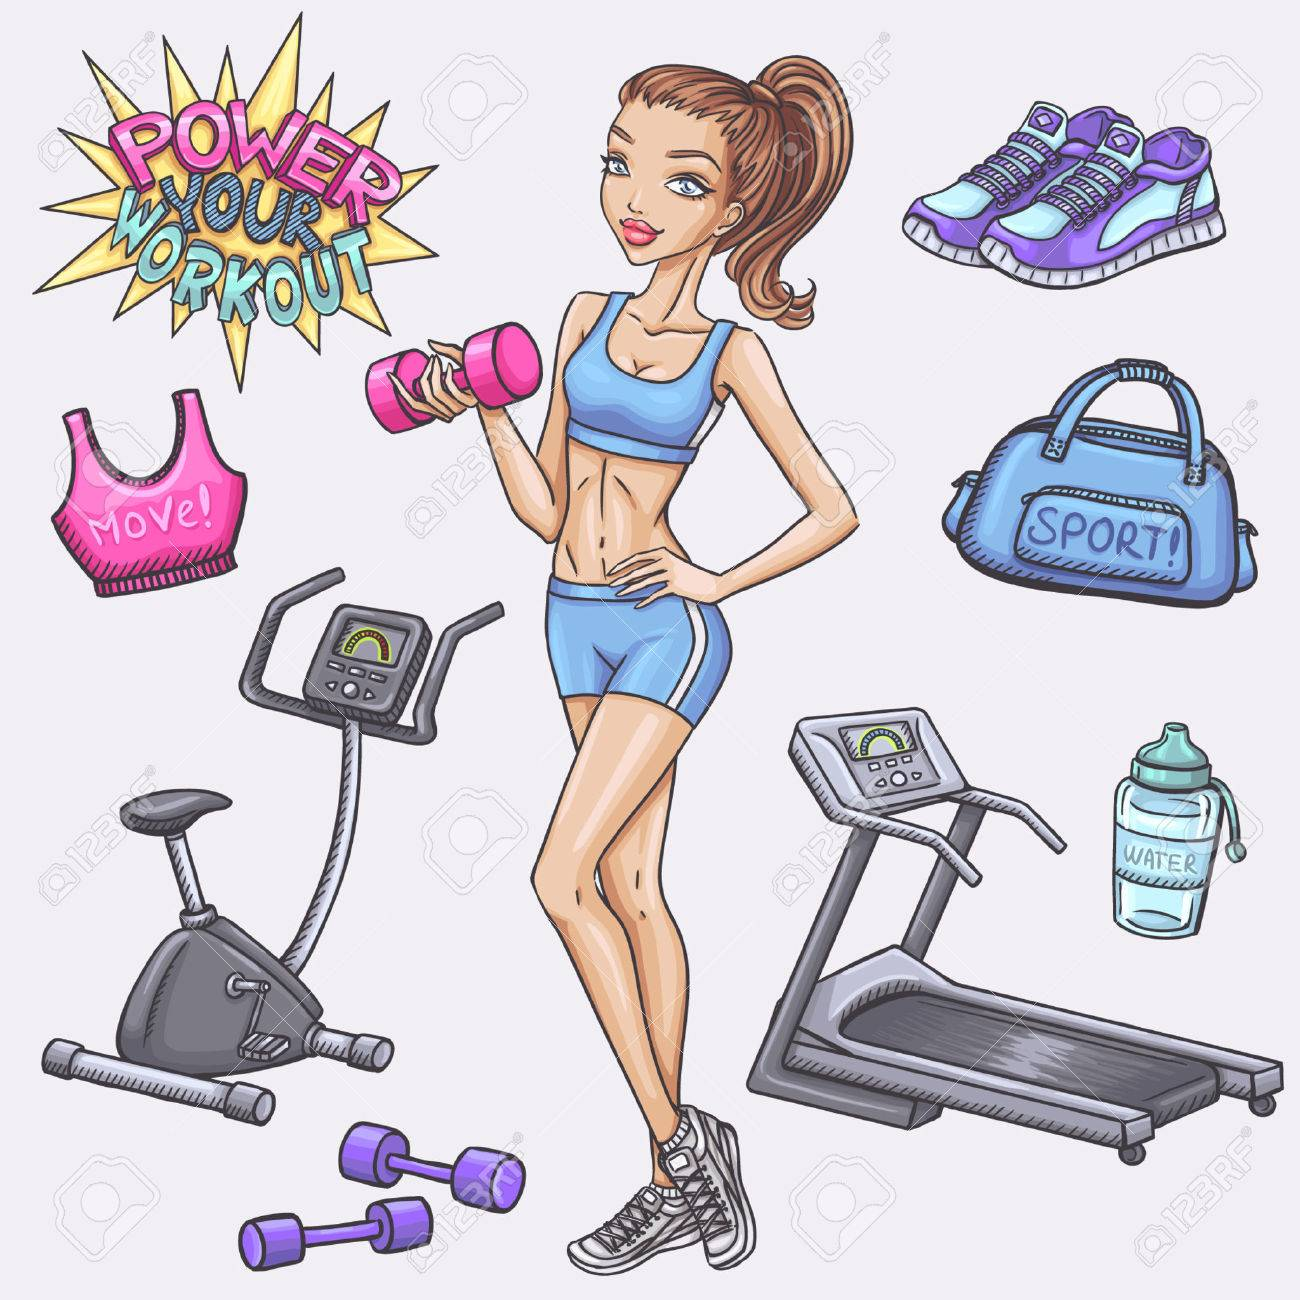 Fitness girl and gum and fitness doodles - 40277676